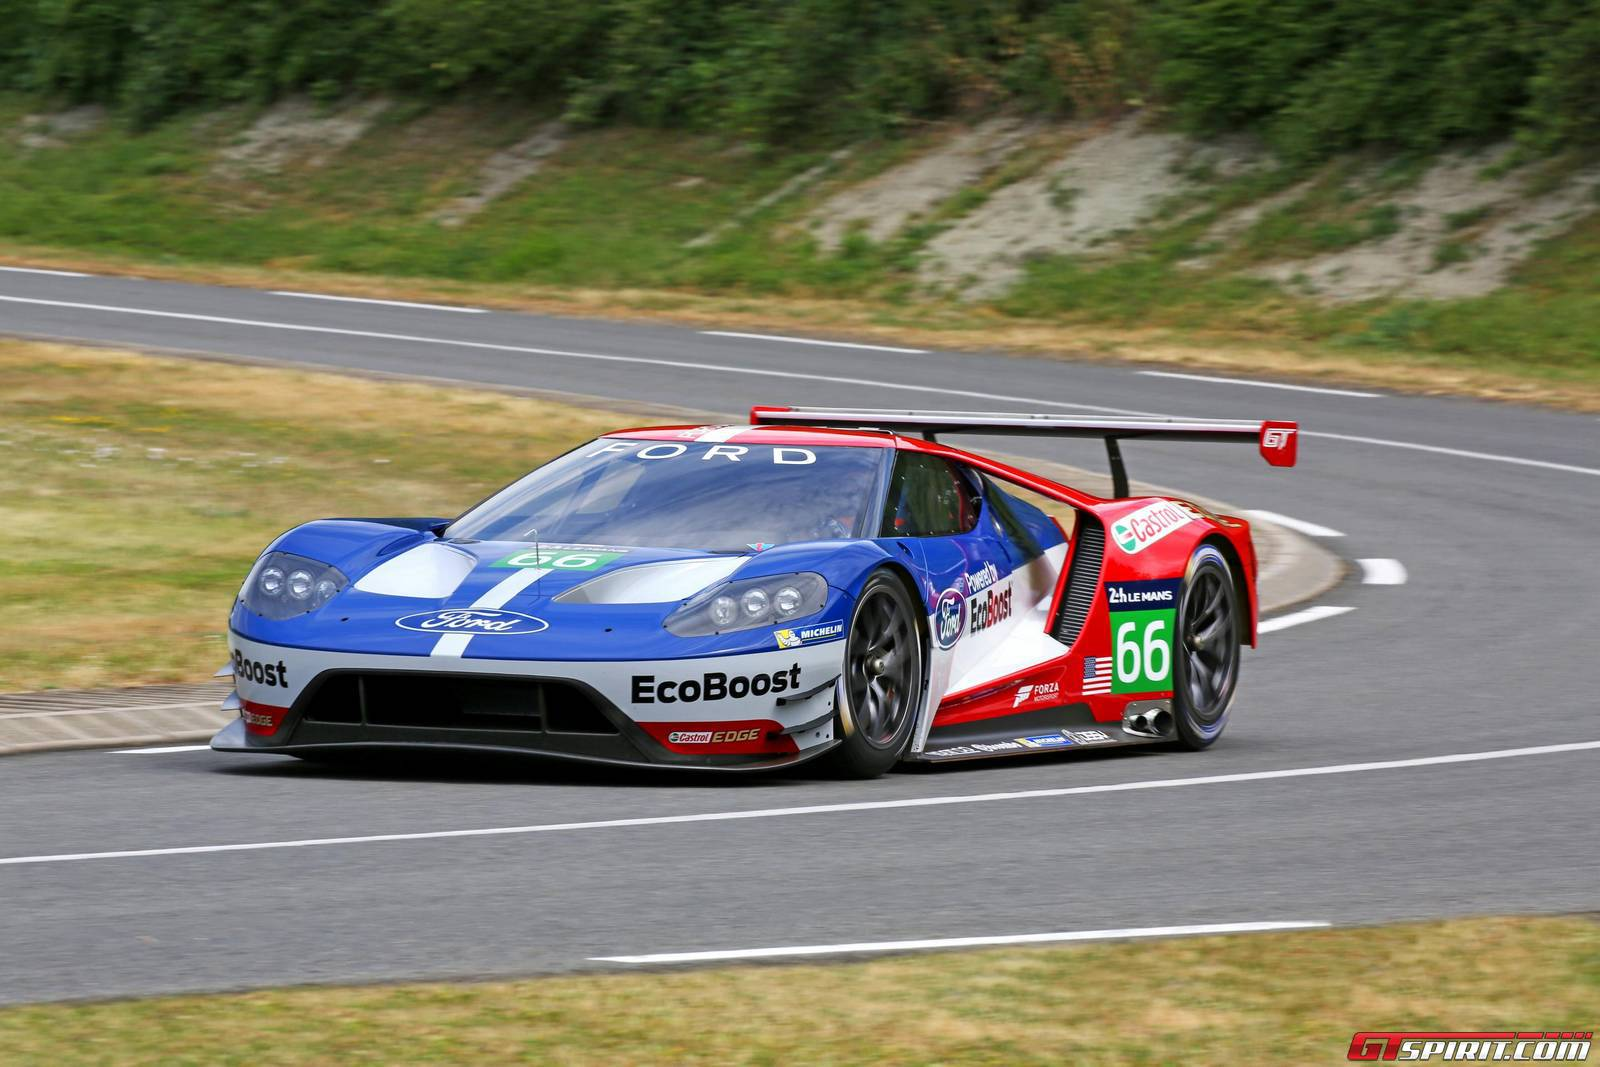 Alongside Competing At Le Mans And The Fia World Endurance Championship The  Ford Gt Gte Will Also Participate In The Tudor United Sportscar